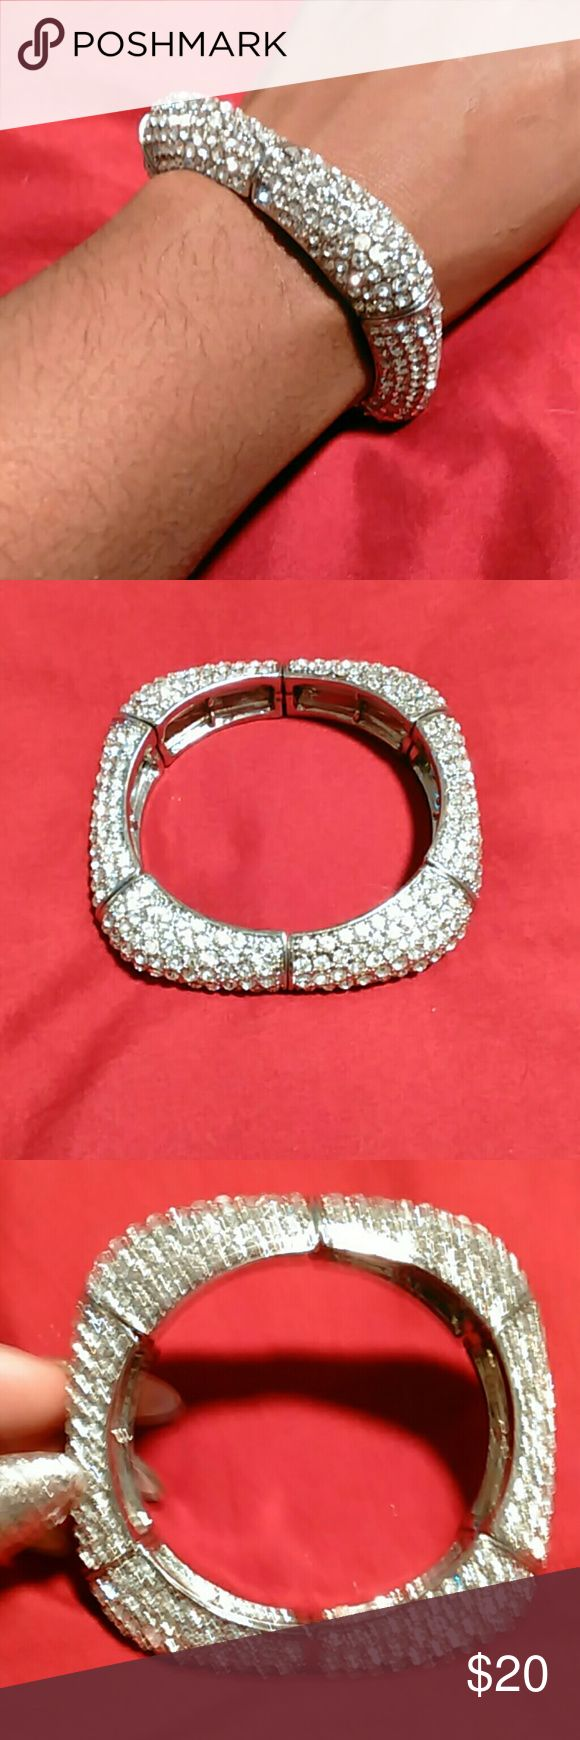 Cache' Bracelet Silver & Clear Crystal Square Stretch Bangle Inside Is  Circular 95 How To